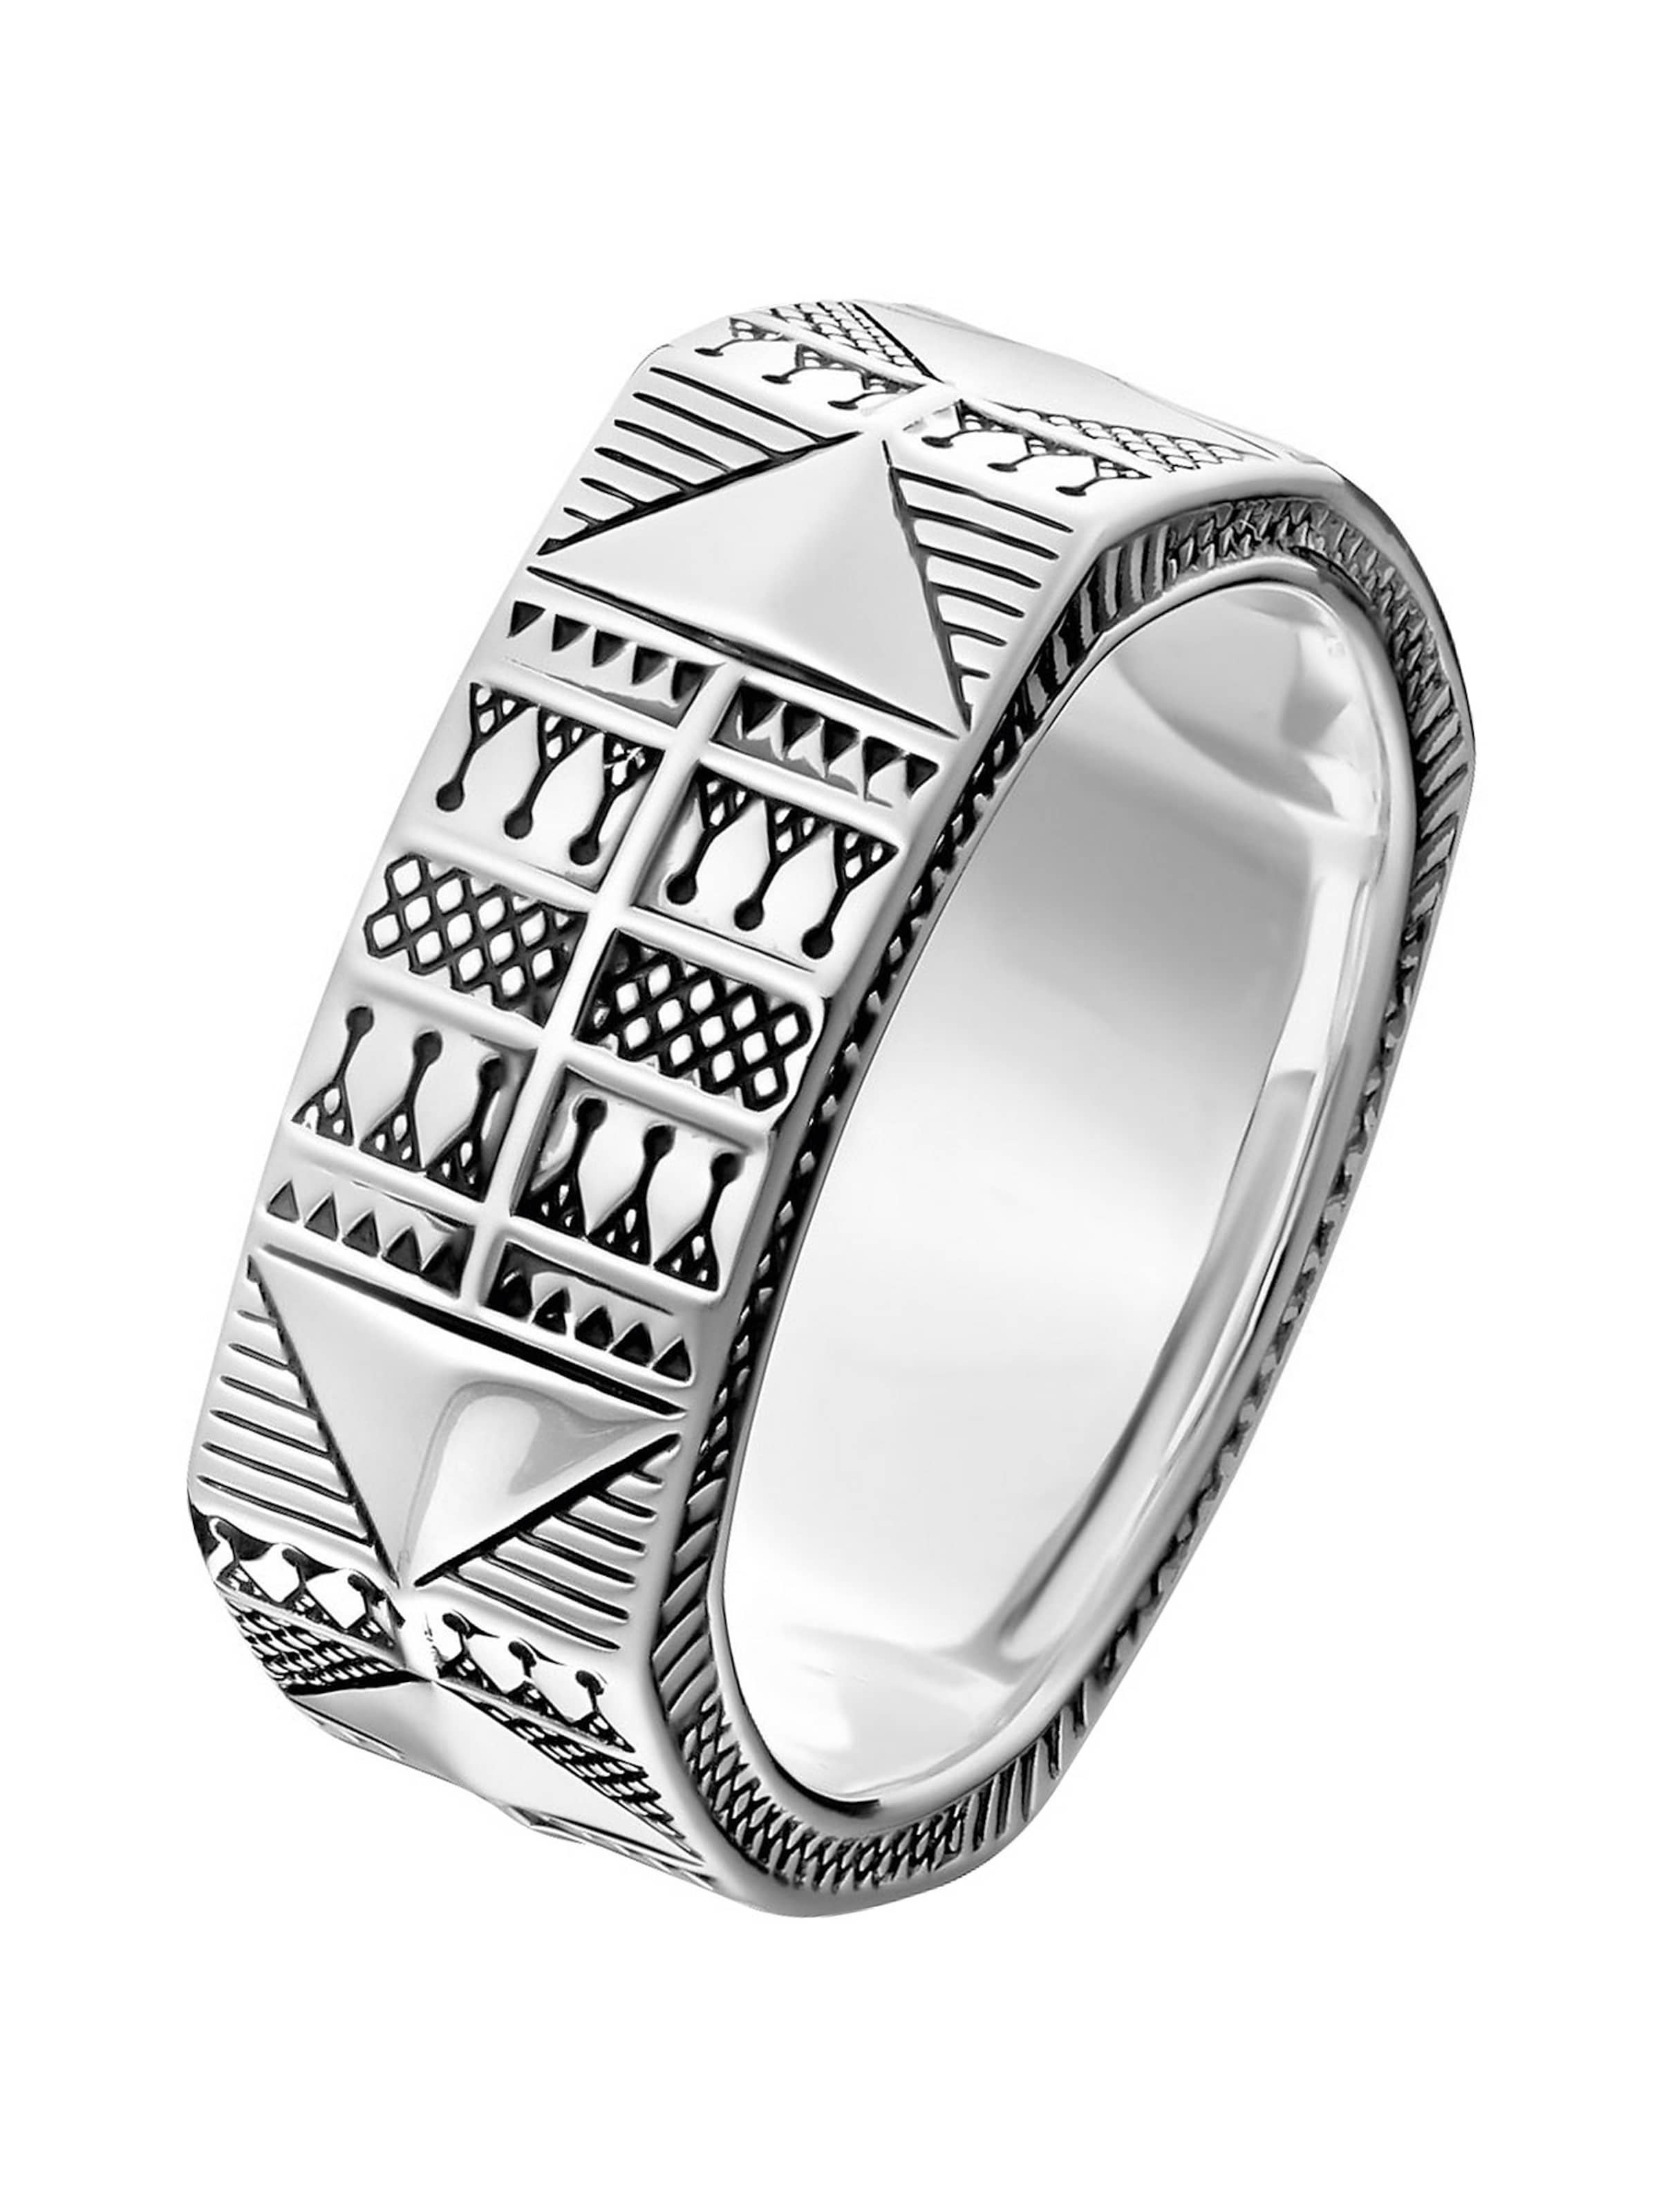 Silber In Thomas In Ring Thomas Sabo Silber Thomas Ring Sabo kZNO8Pn0wX